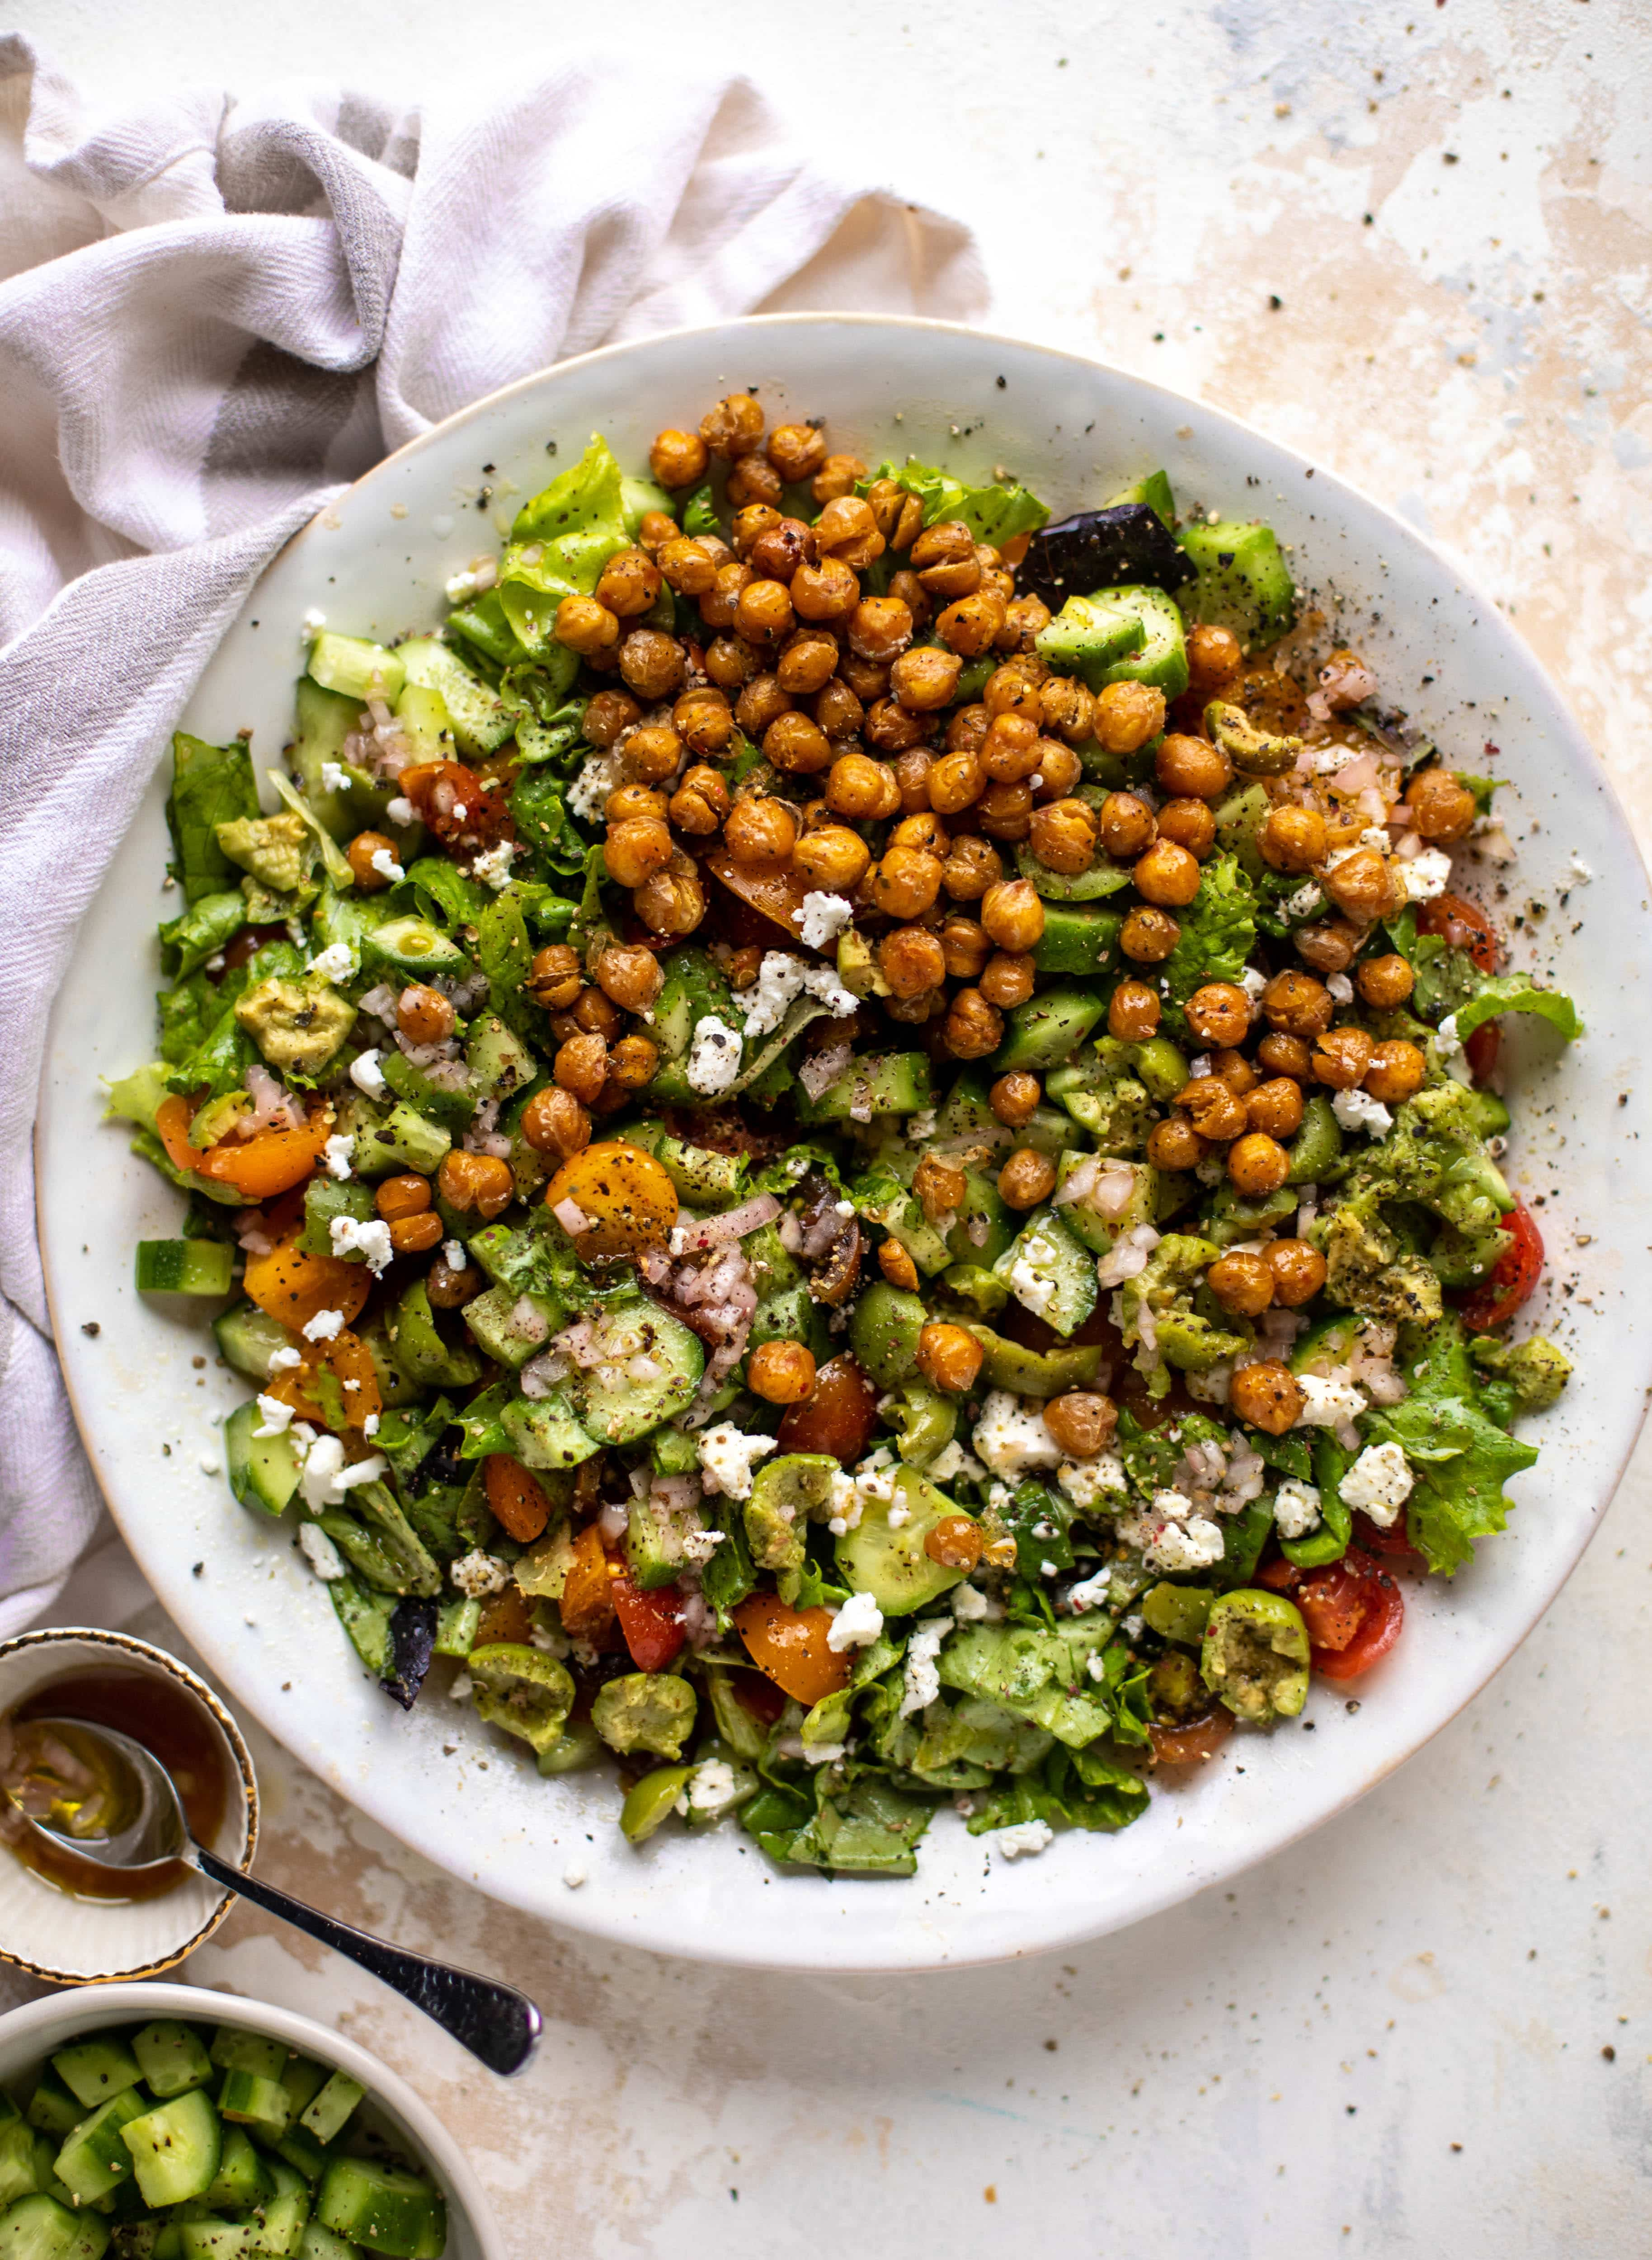 This crispy chickpea chopped salad is super simple and loaded with flavor. It's an incredible side or starter and a huge crowd pleaser!